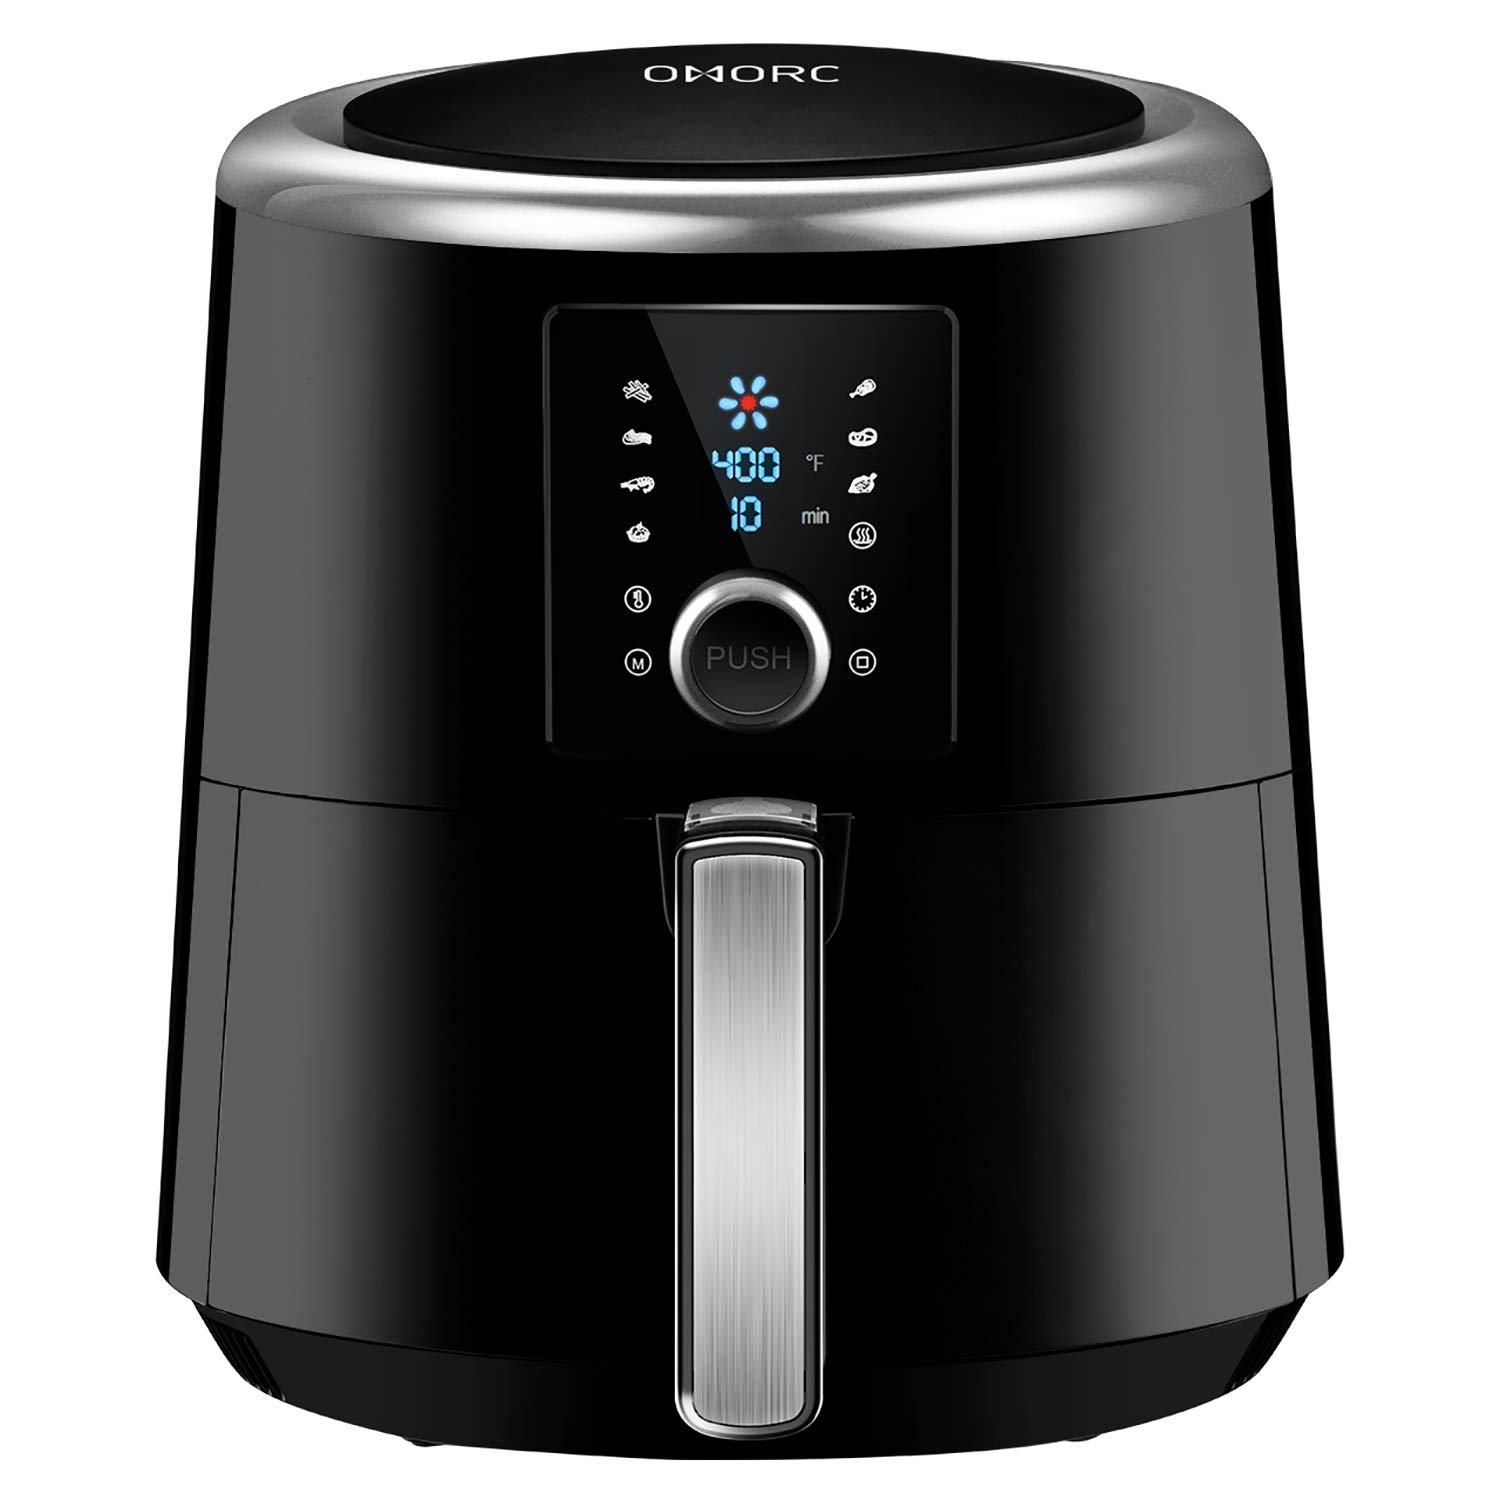 OMORC 6 Quart Air Fryer, Air Fryers, 1800W Fast Large Hot Air Fryers & Oilless Cooker w/Presets, LED Touchscreen(for Wet Finger)/Roast/Bake/Keep Warm, Dishwasher Safe, Nonstick,2-Year Warranty(ME122) by OMORC